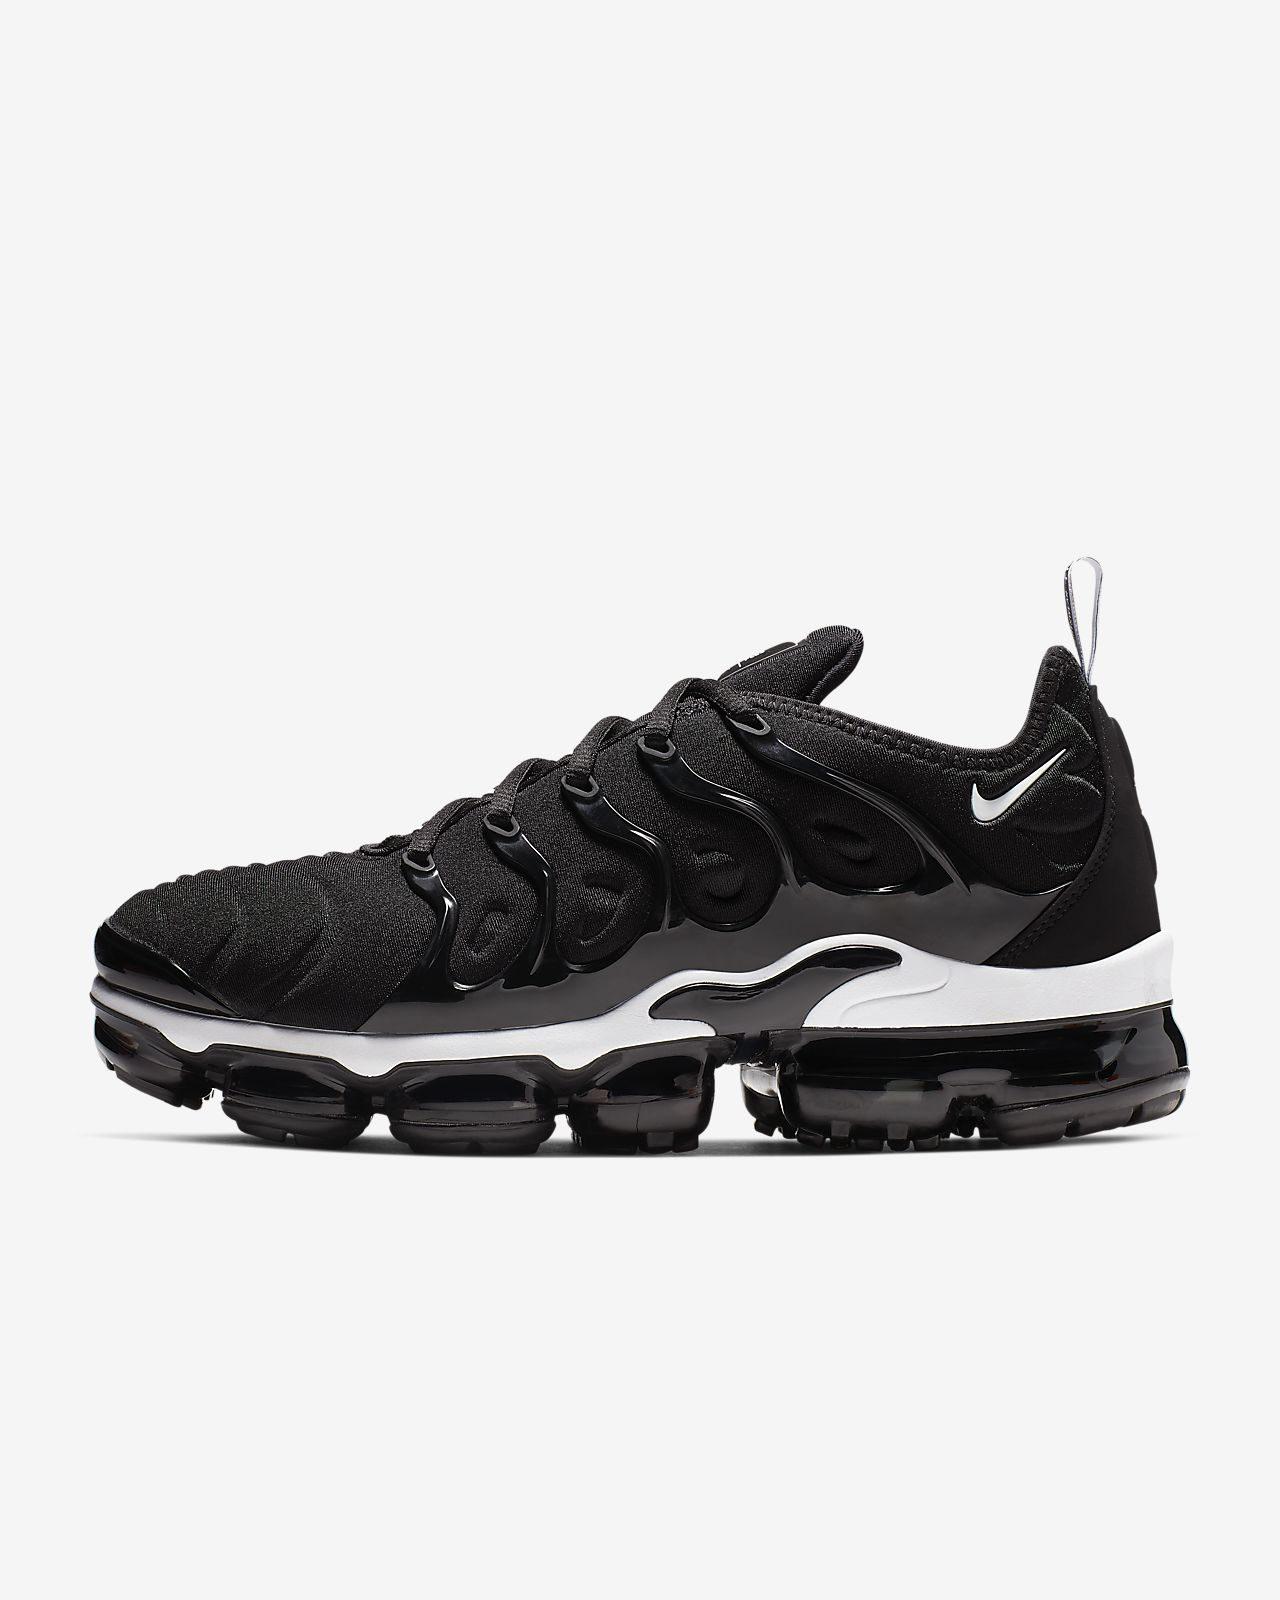 4968425bec5 Nike Air VaporMax Plus Men s Shoe. Nike.com GB